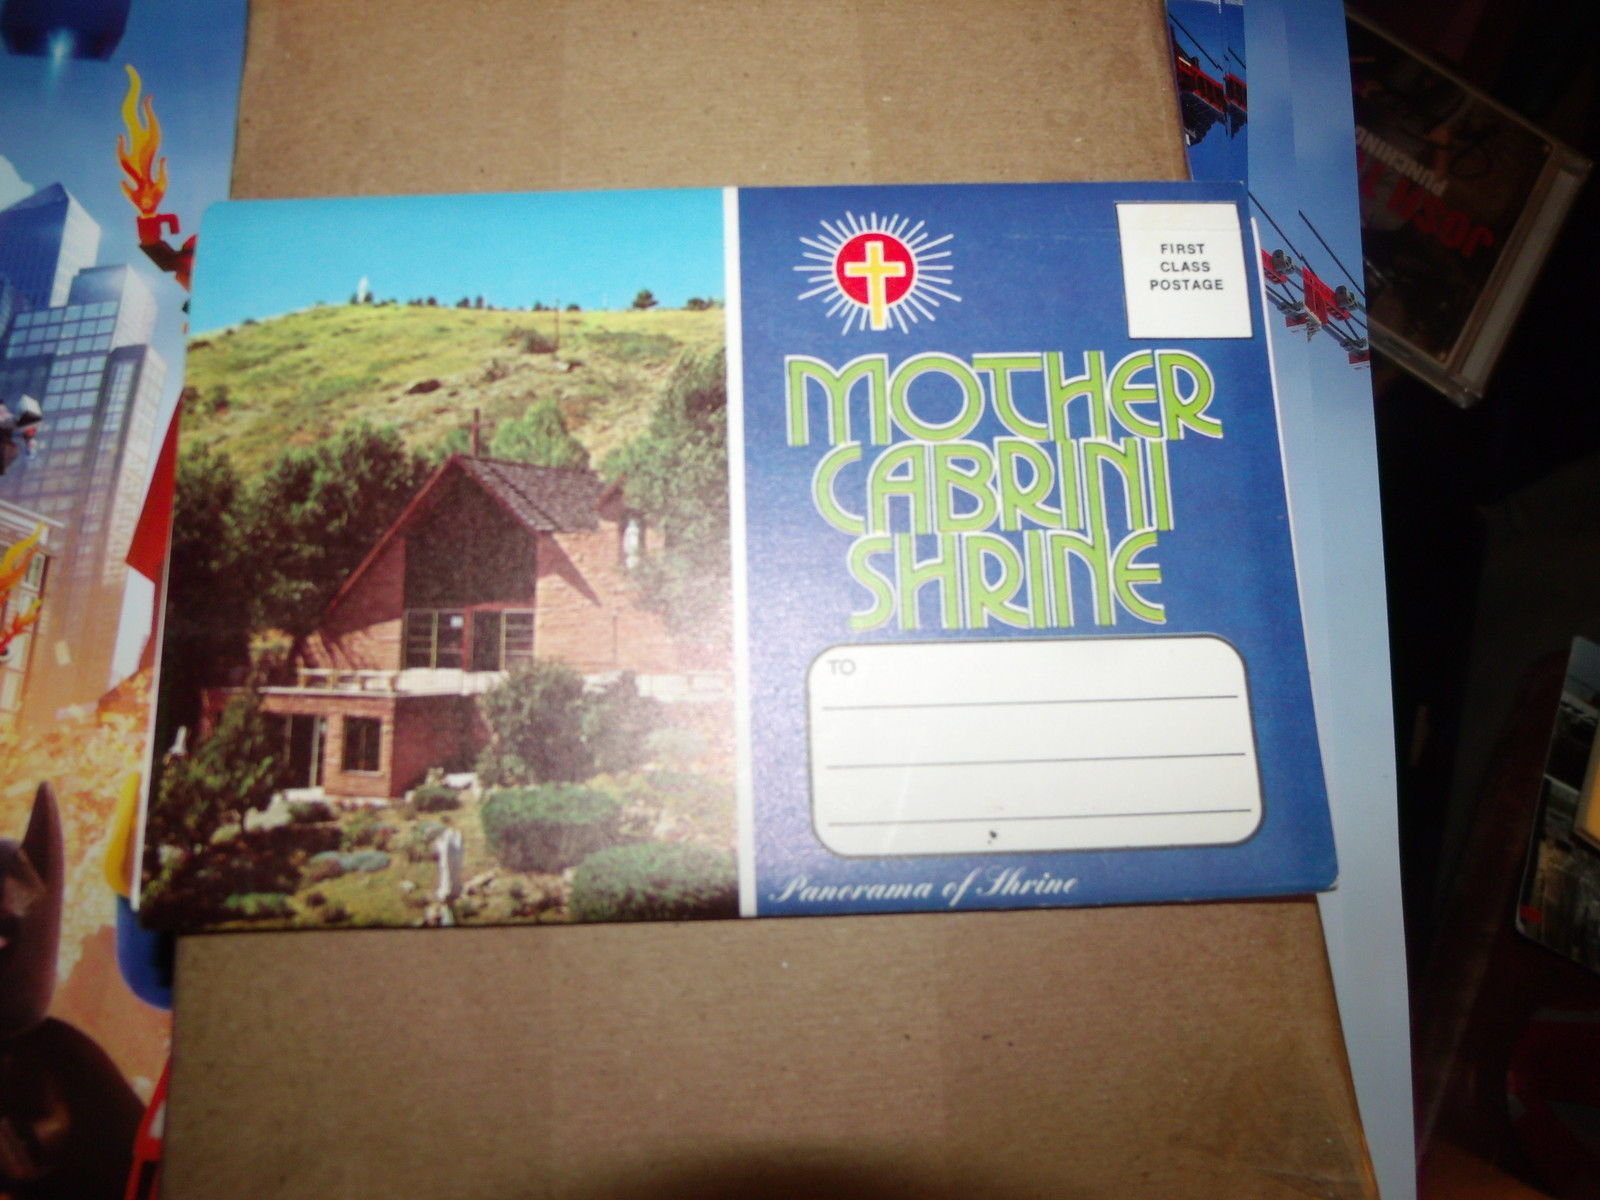 MOTHER CABRINI SHRINE VINTAGE UNUSED FOLDOUT POSTCARD BOOKLET